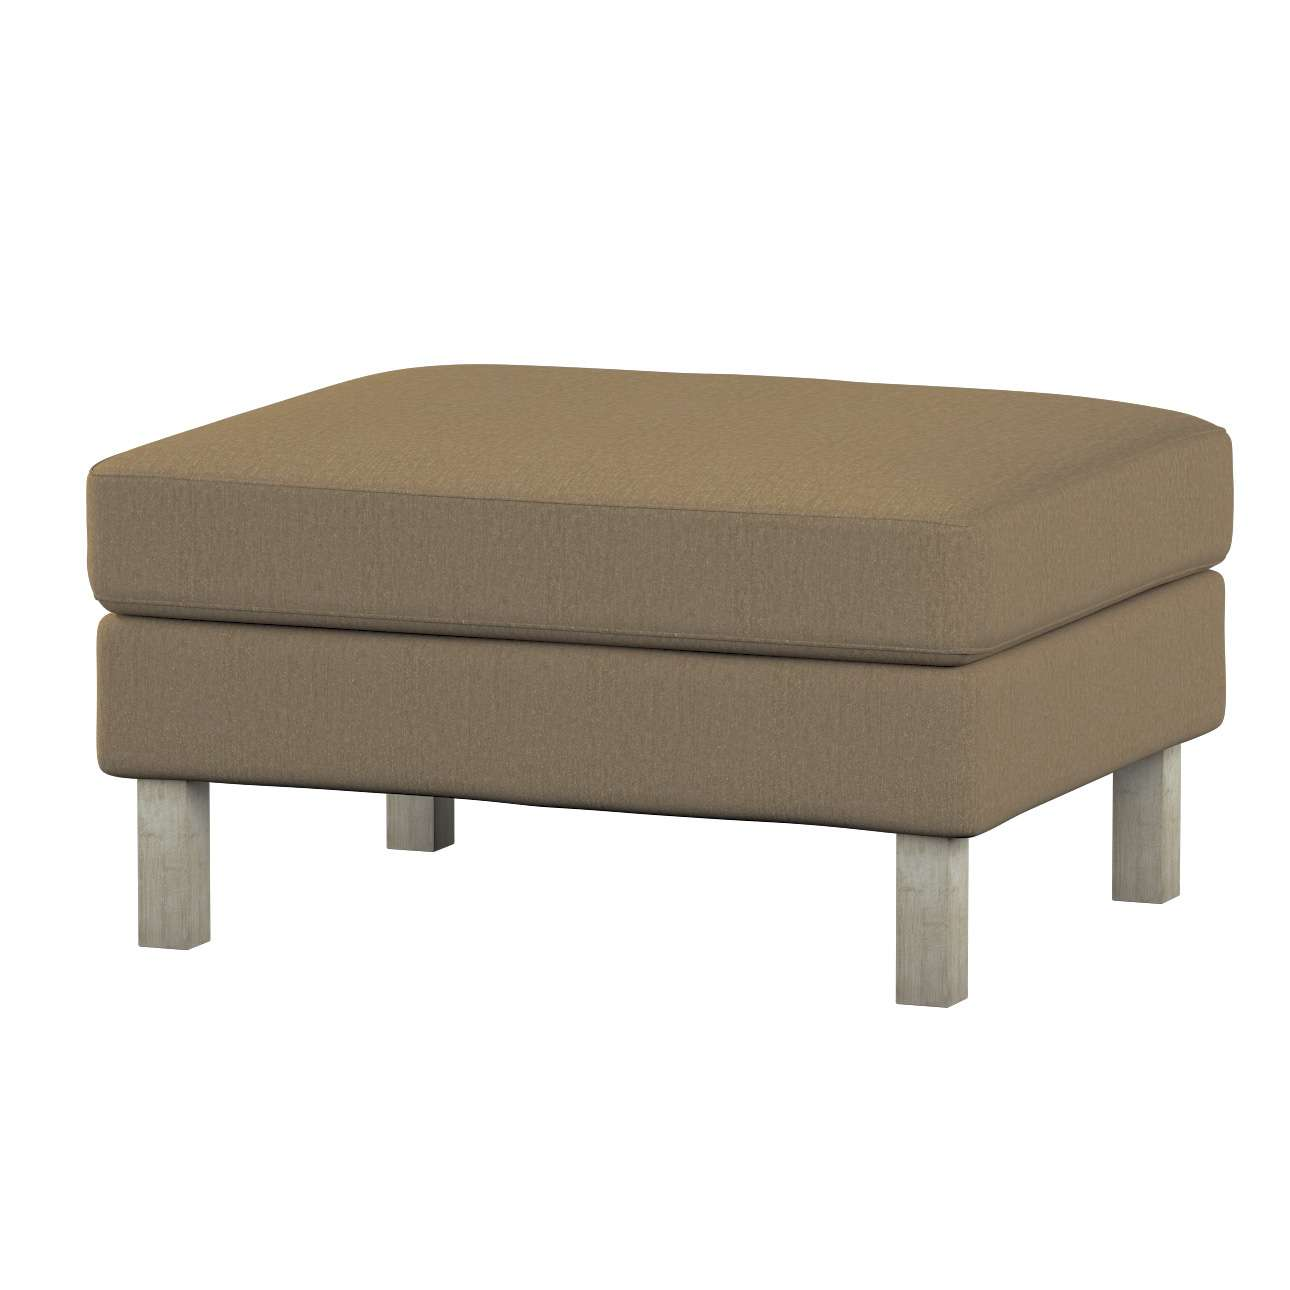 Karlstad footstool cover Karlstad footstool cover in collection Chenille, fabric: 702-21